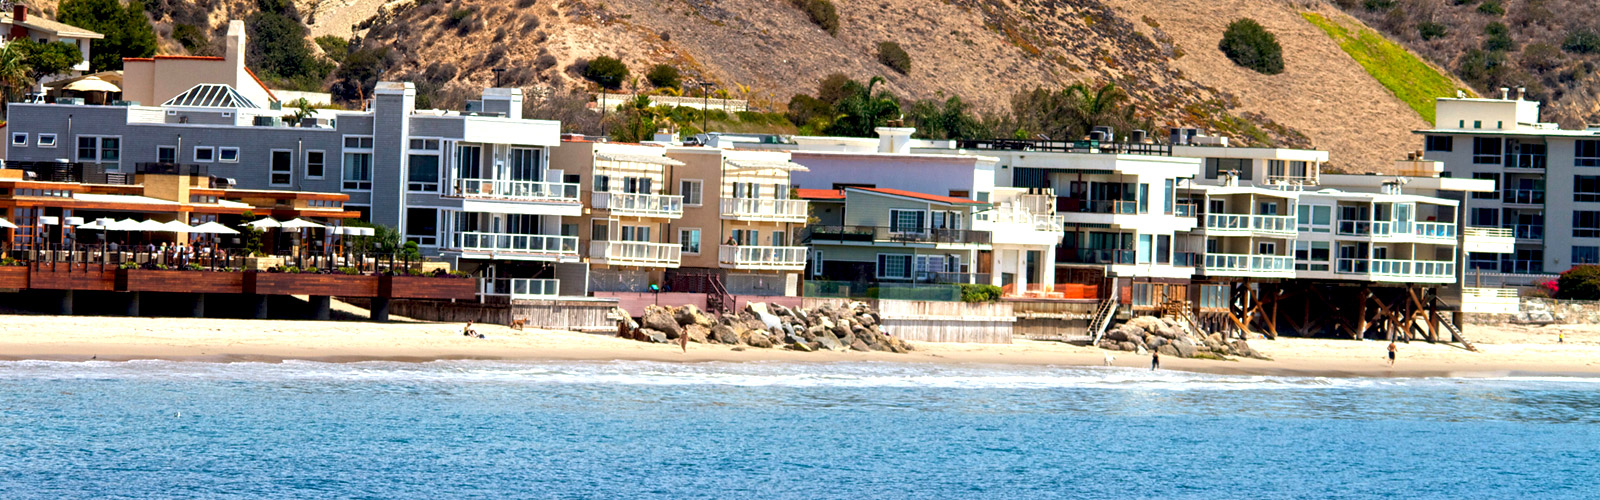 Picture of the Malibu Coastline with Residential Properties